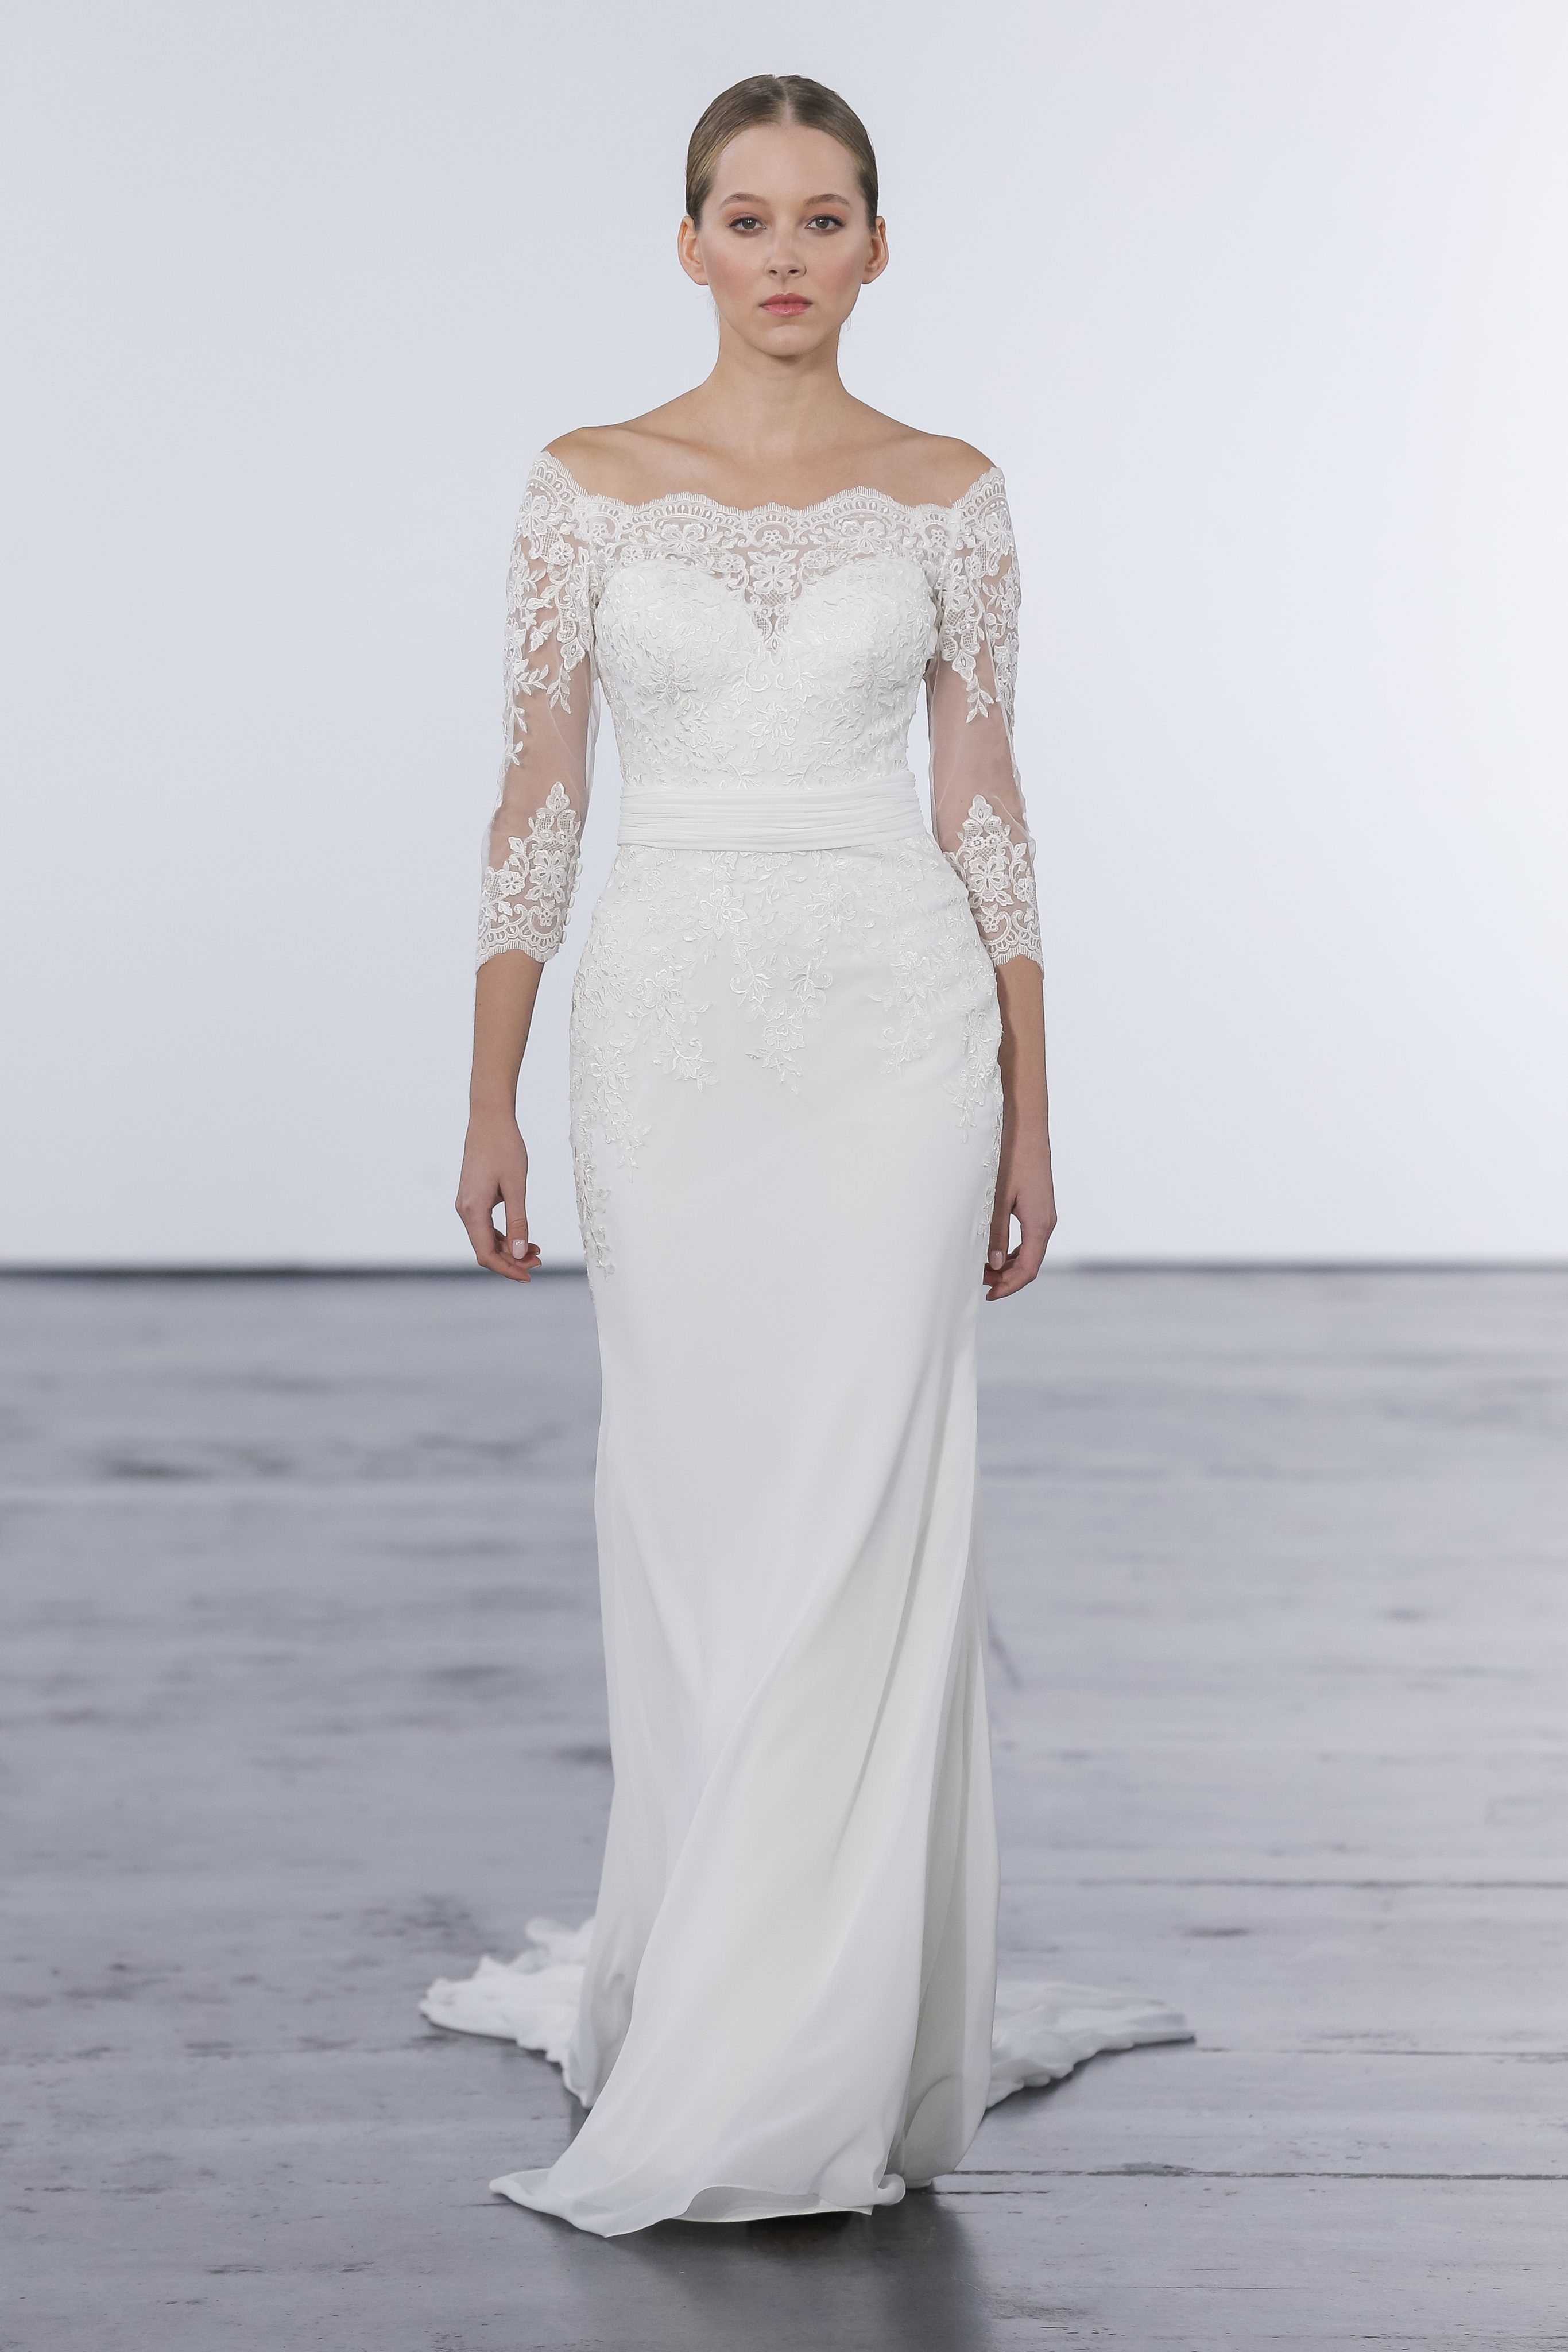 Classic Sheath Wedding Dress | Kleinfeld Bridal